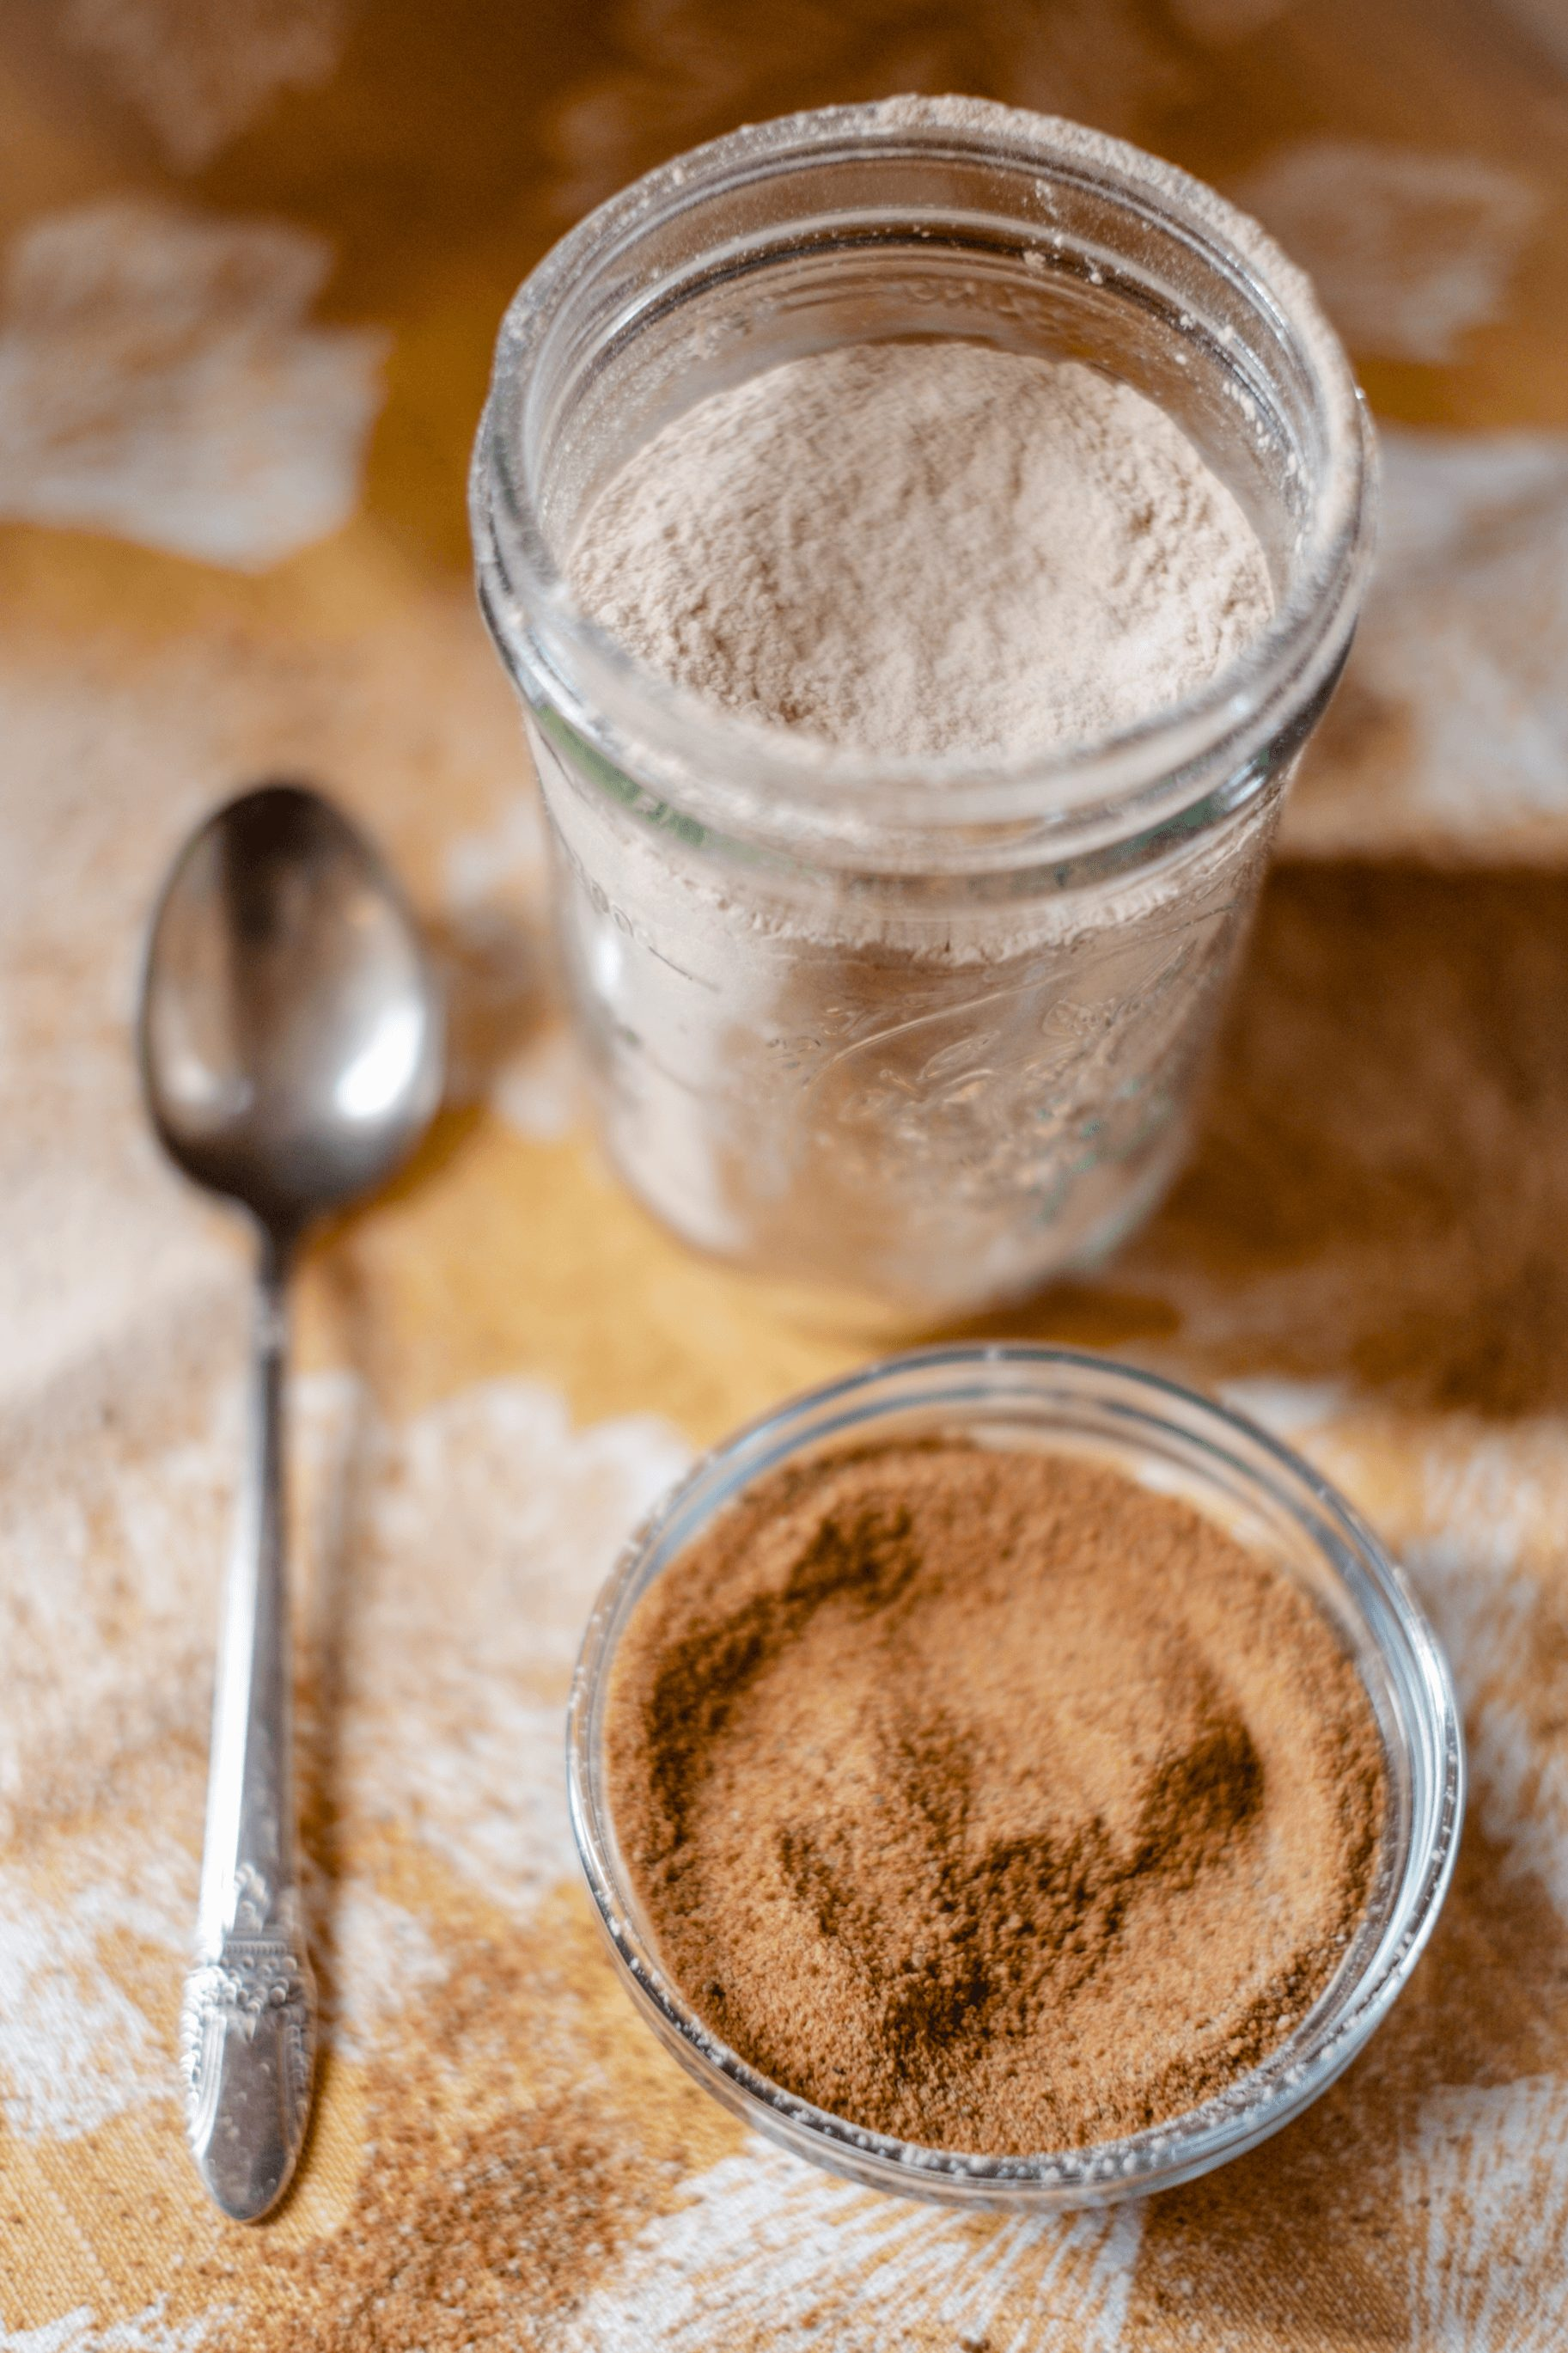 How To Make Powdered Sugar #whatsavvysaid #coconutsugar #paleofriendly #powderedsugar